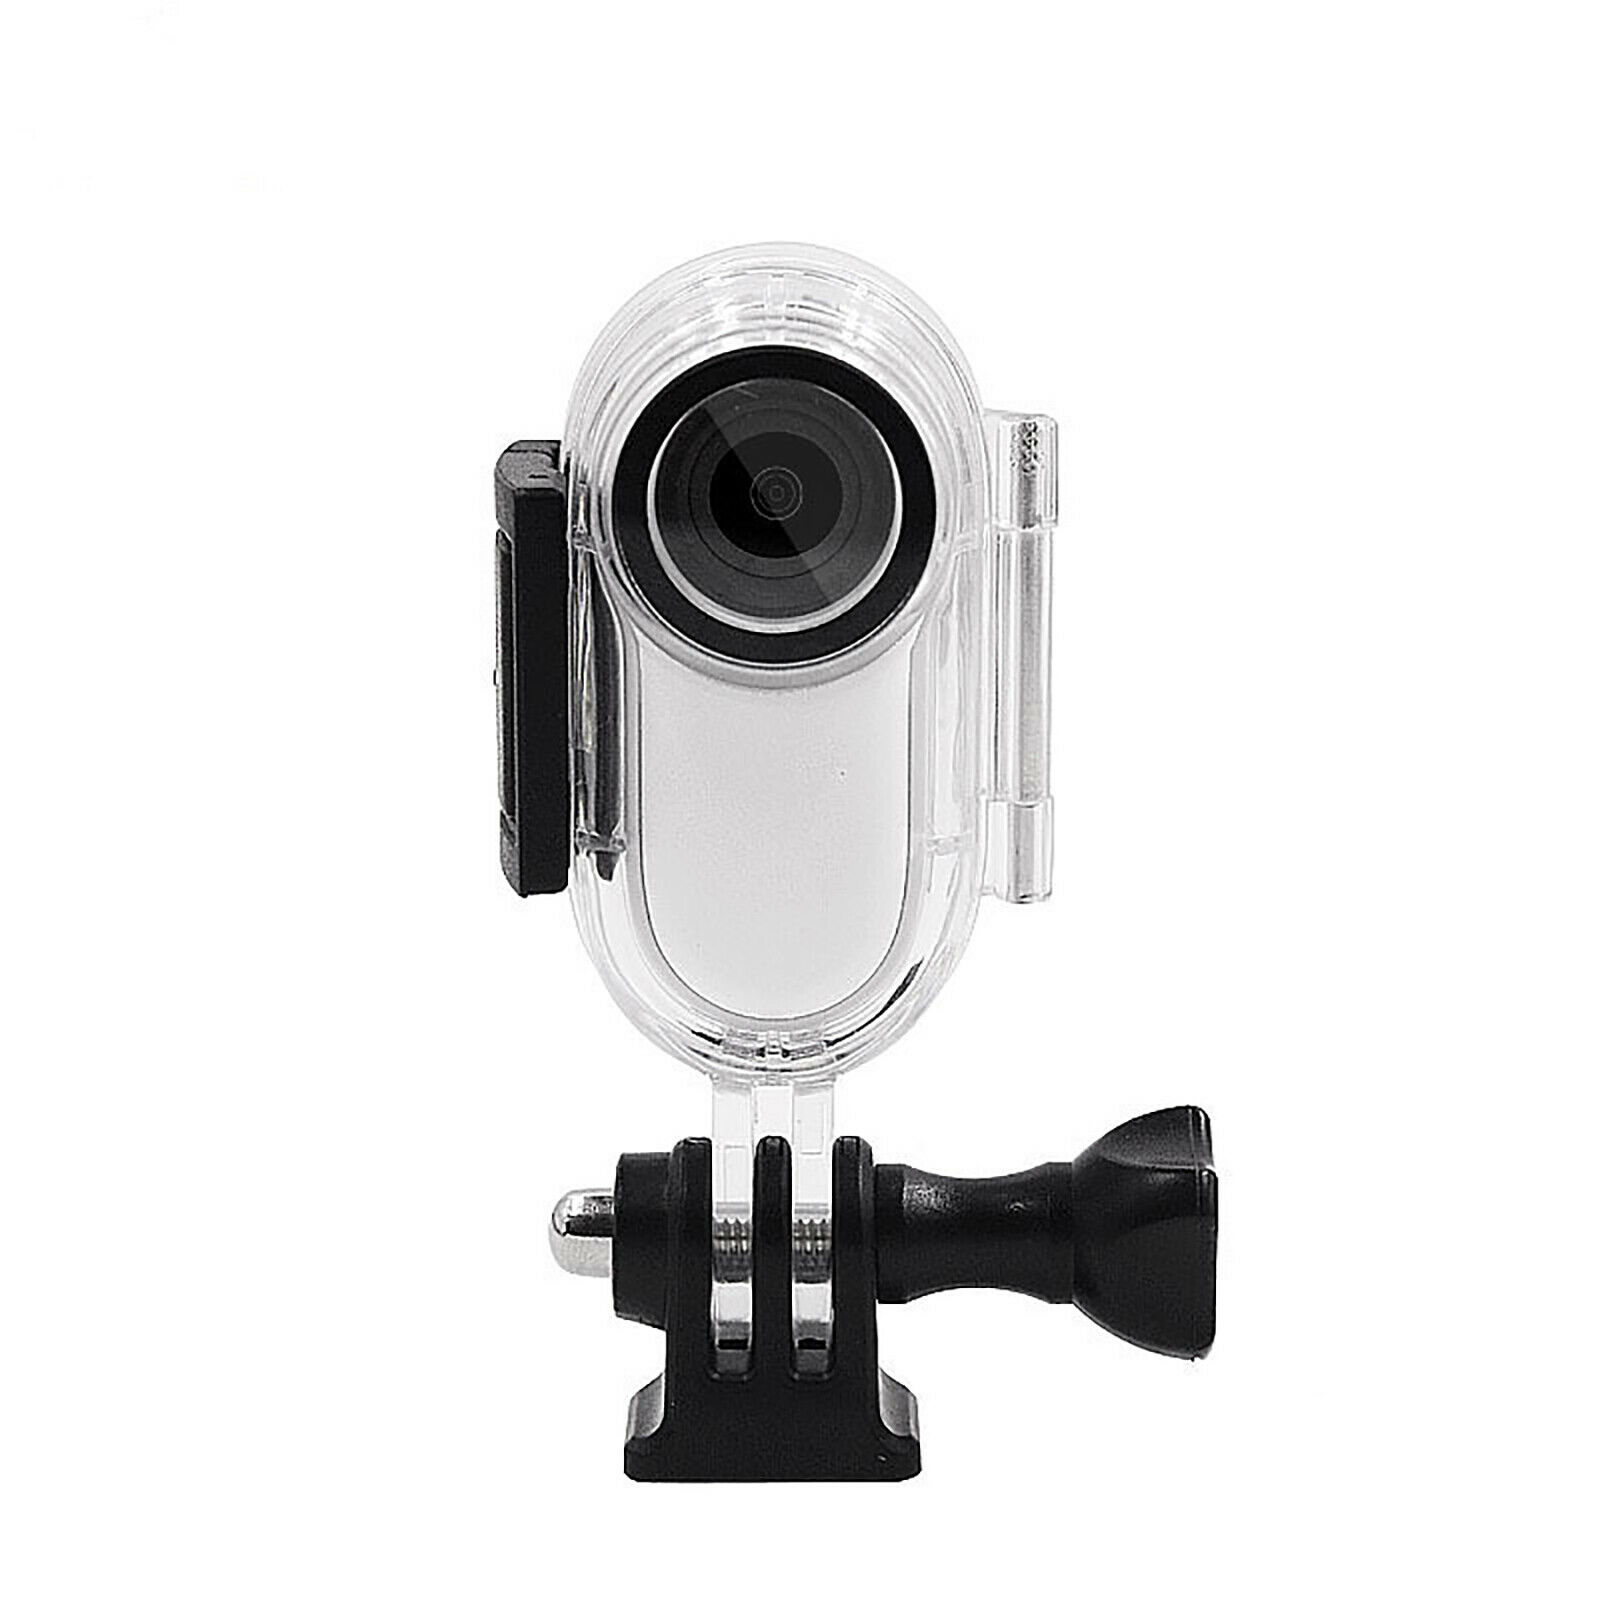 For Insta360 Go2 Thumb Camera Waterproof Case Protective Cover Housing Shell ZIT